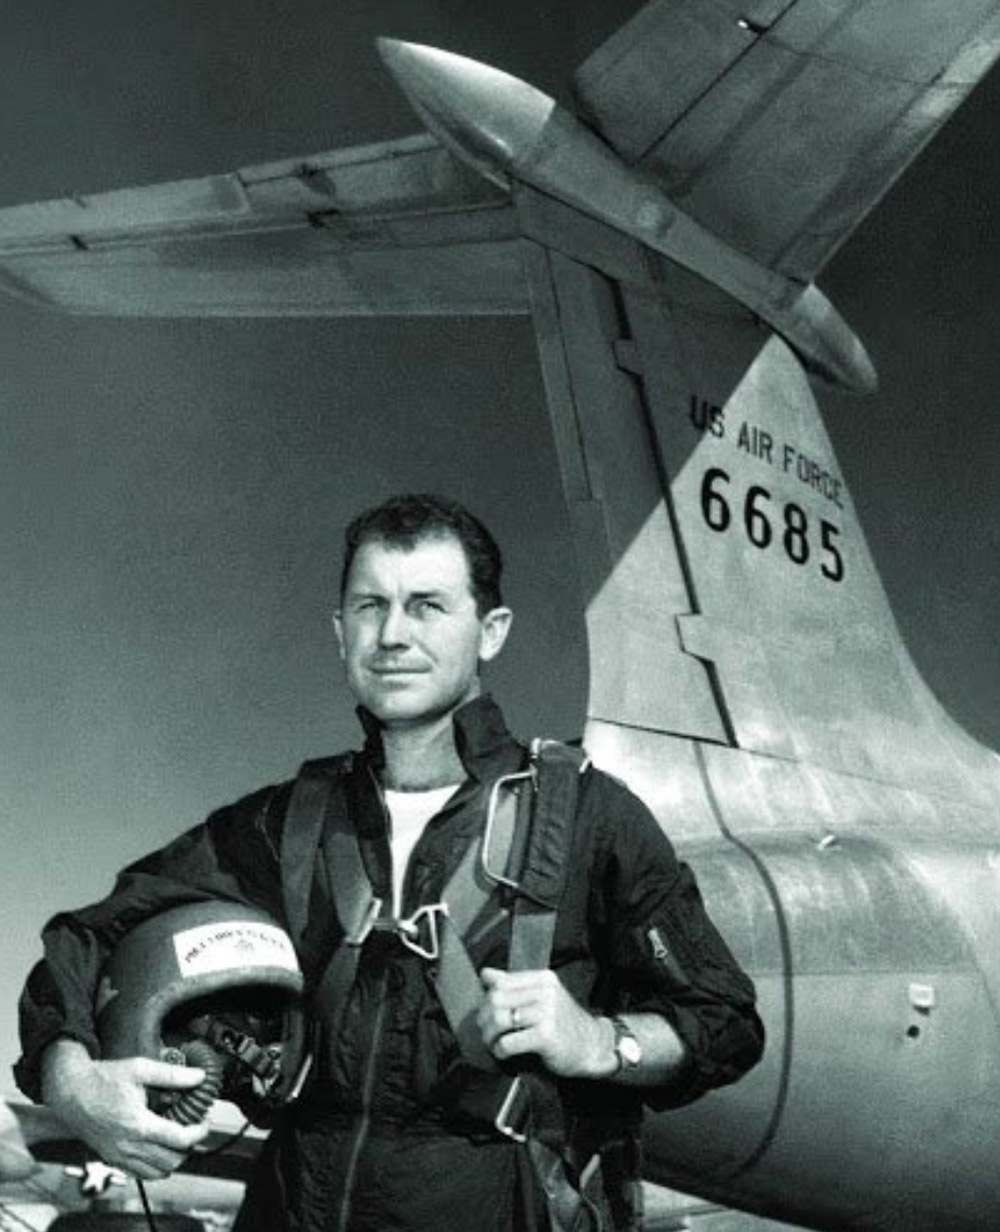 Yeager was the first man to break the sound barrier in 1947.